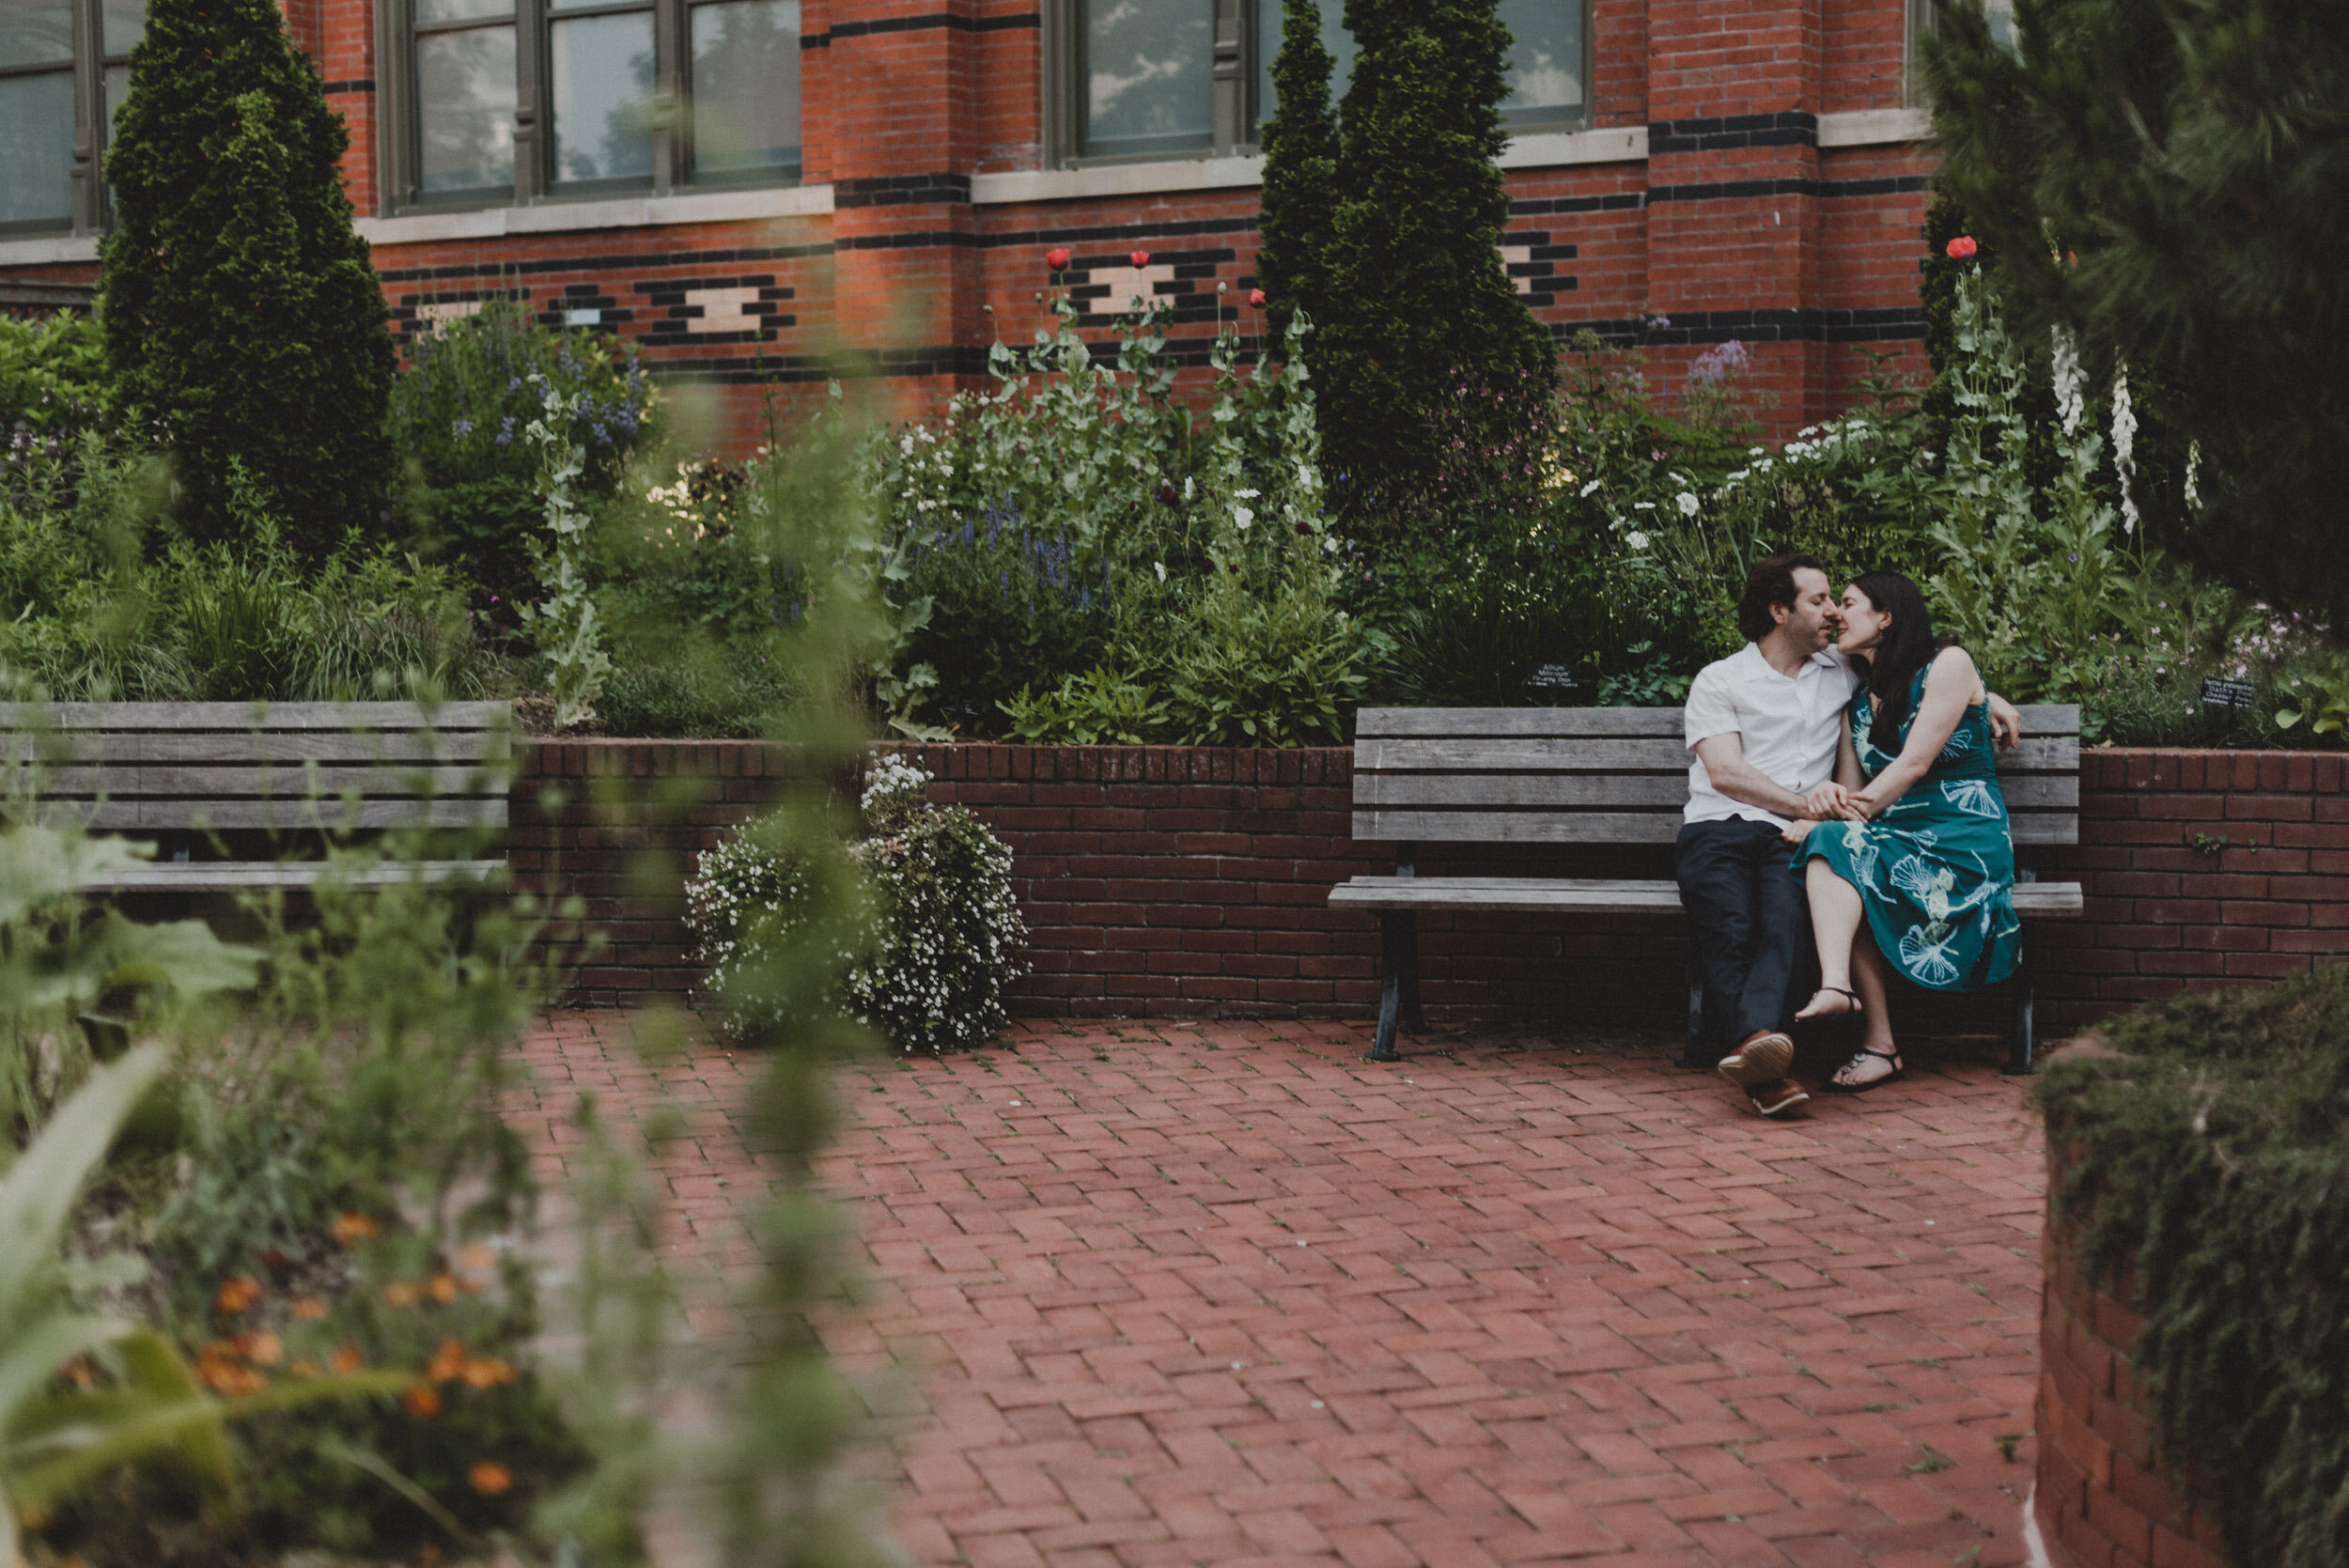 Moongate_Garden_Engagement-55.jpg